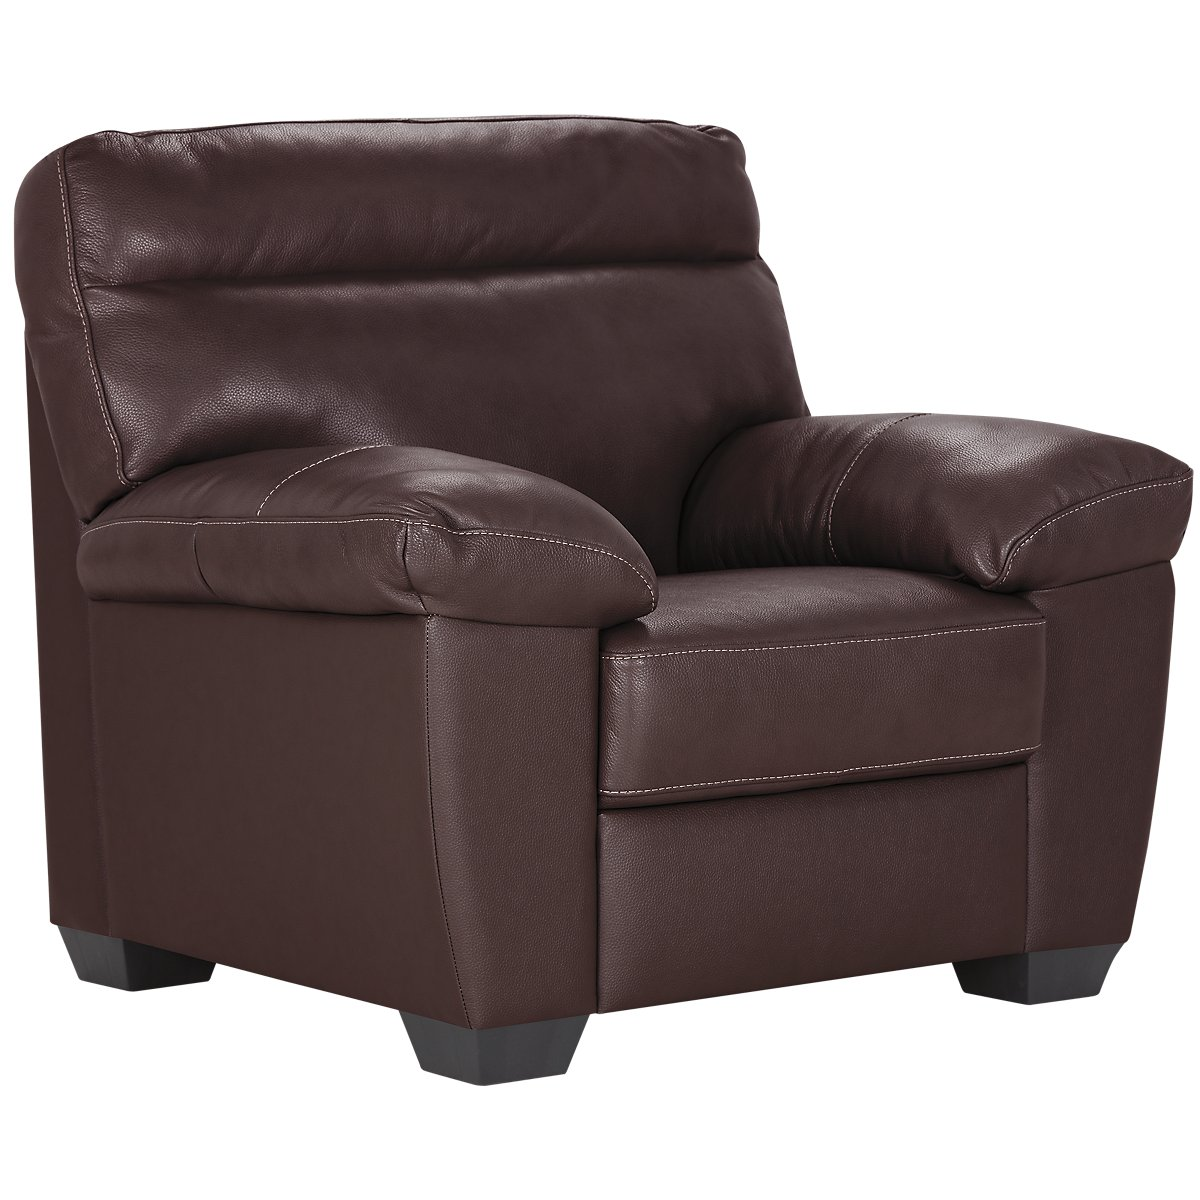 Leather chair and a half recliner - Devon Dark Brown Leather Chair